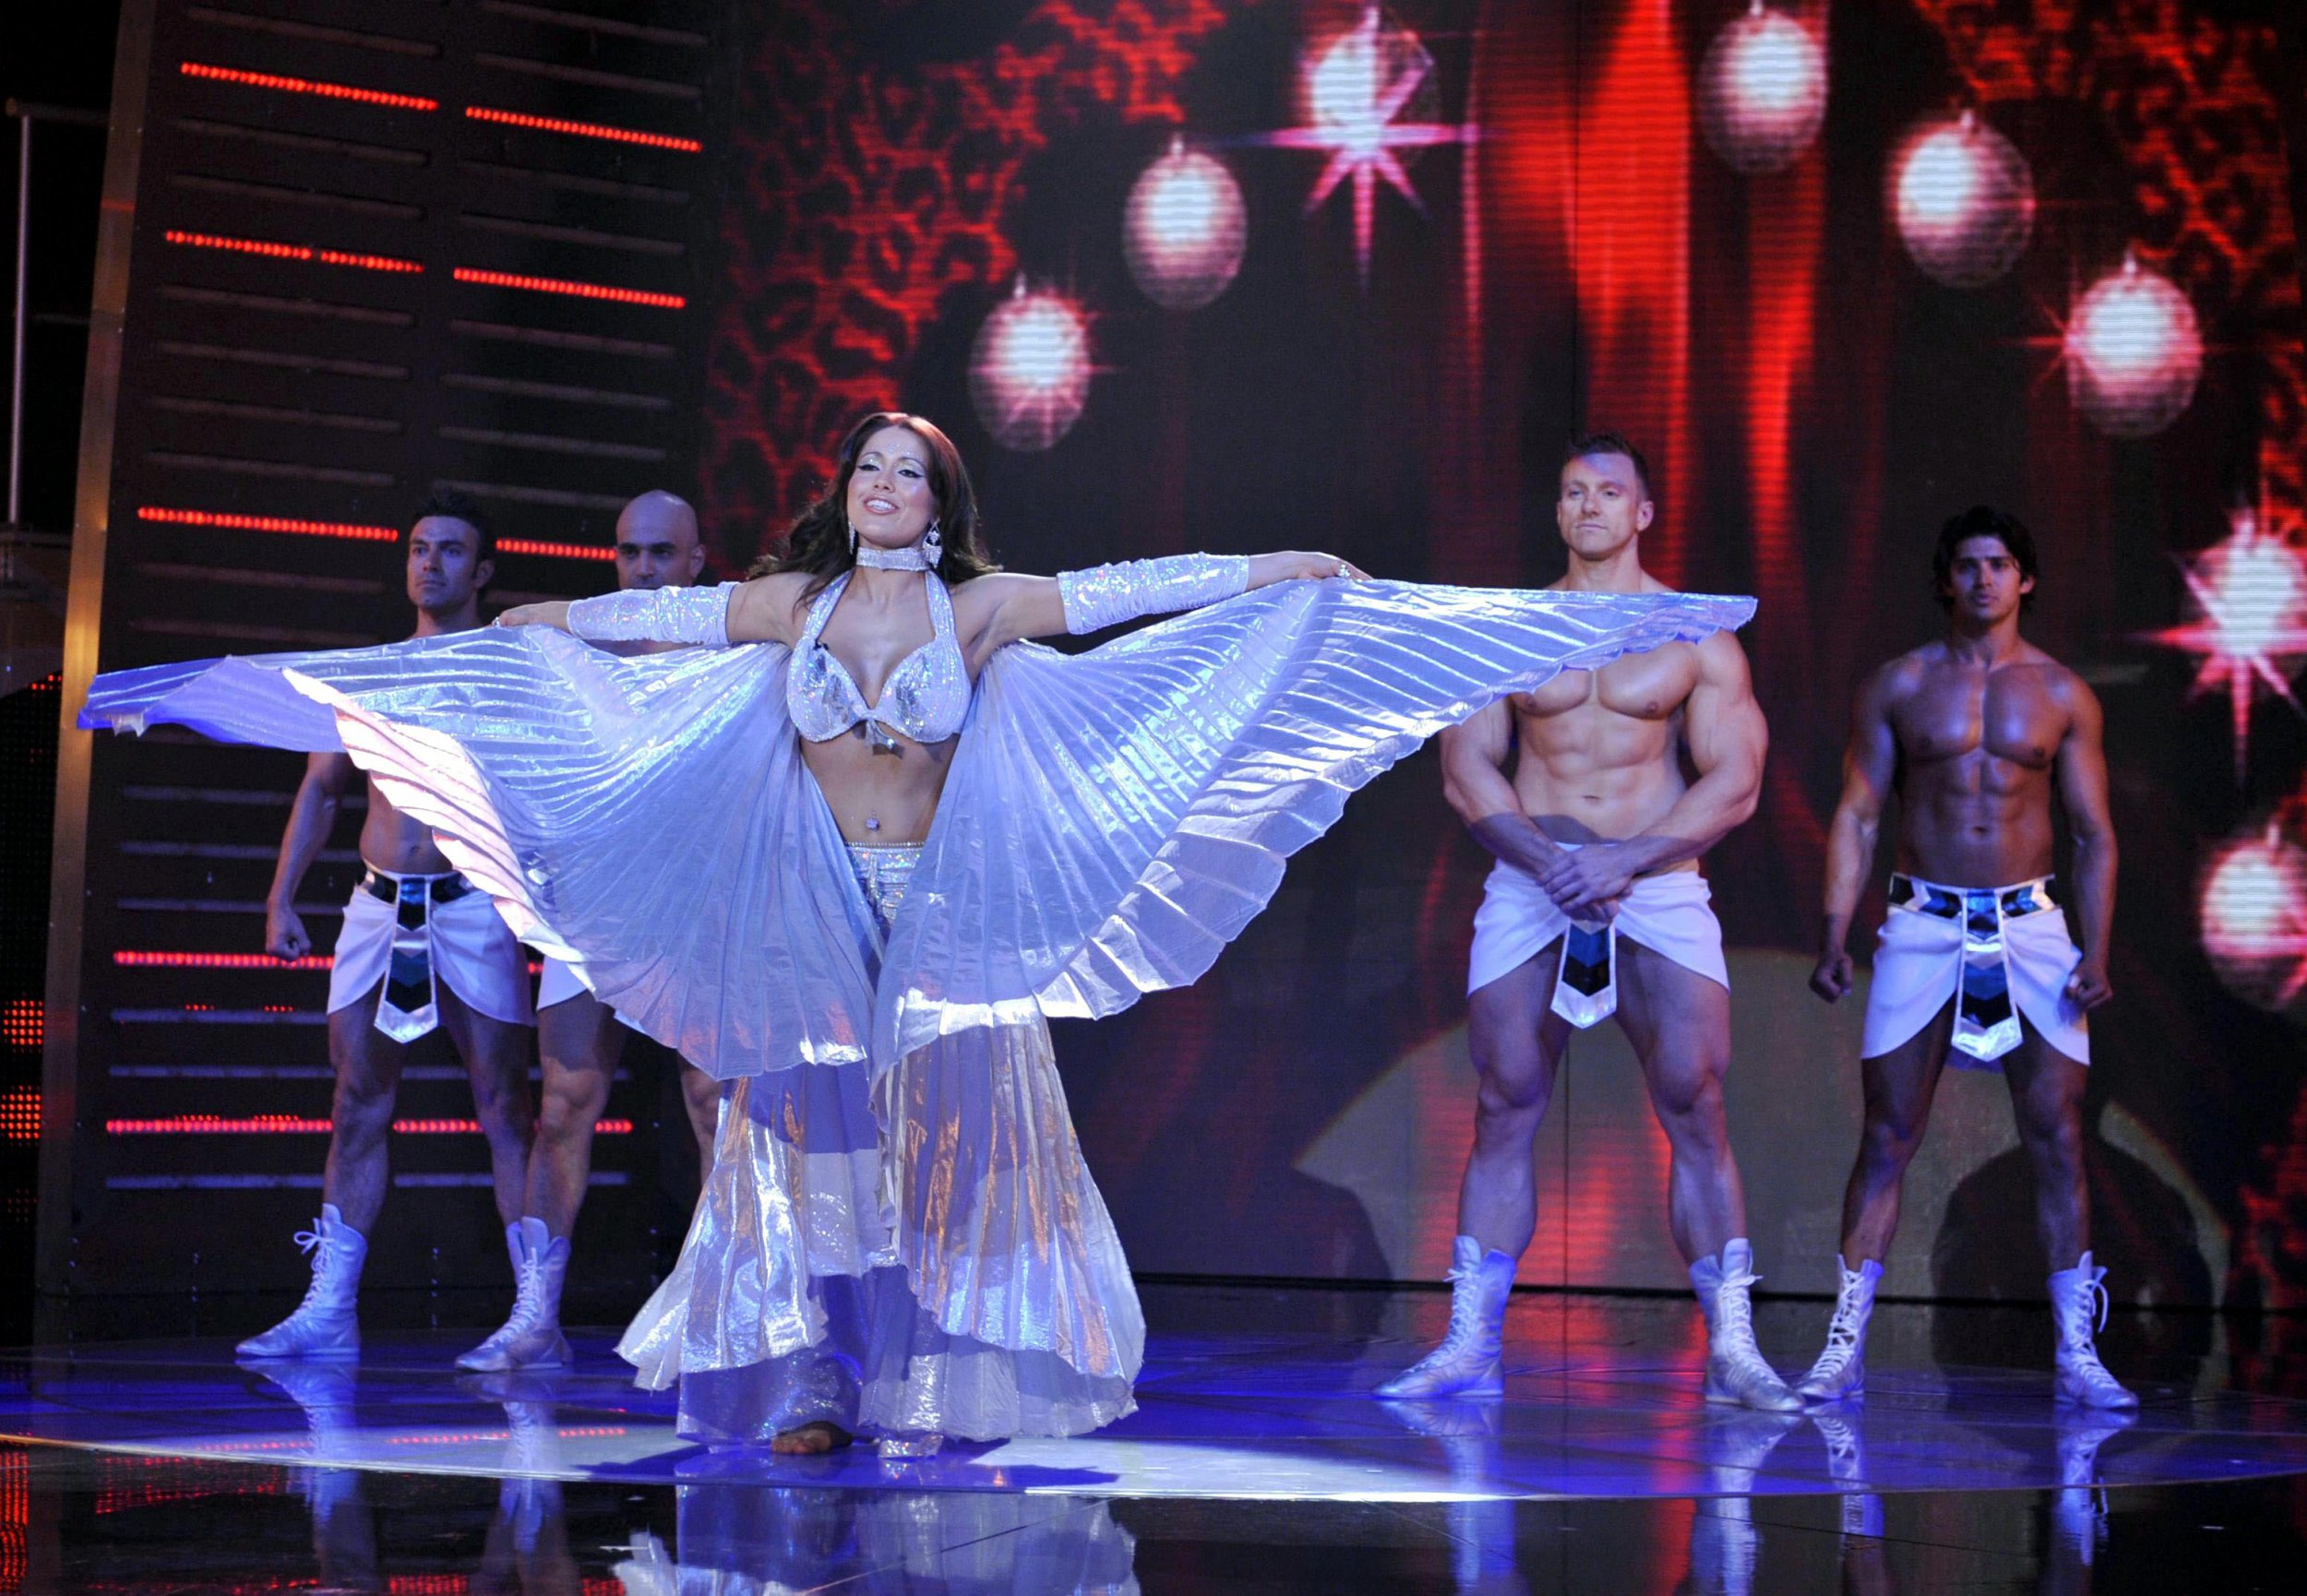 The secret-life of a professional bellydancer: 5 things you didn't know about working as a performer